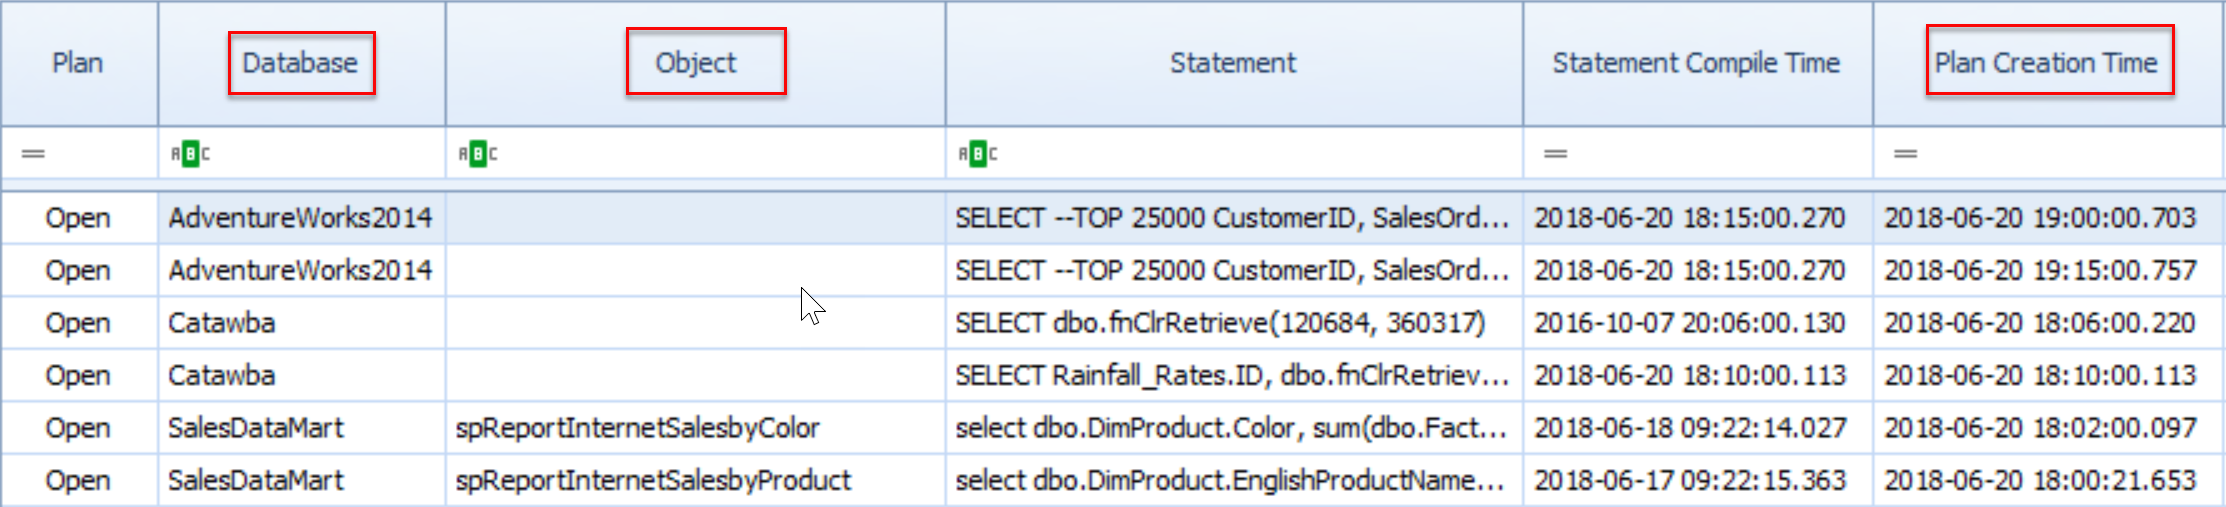 SentryOne Query Plans default columns